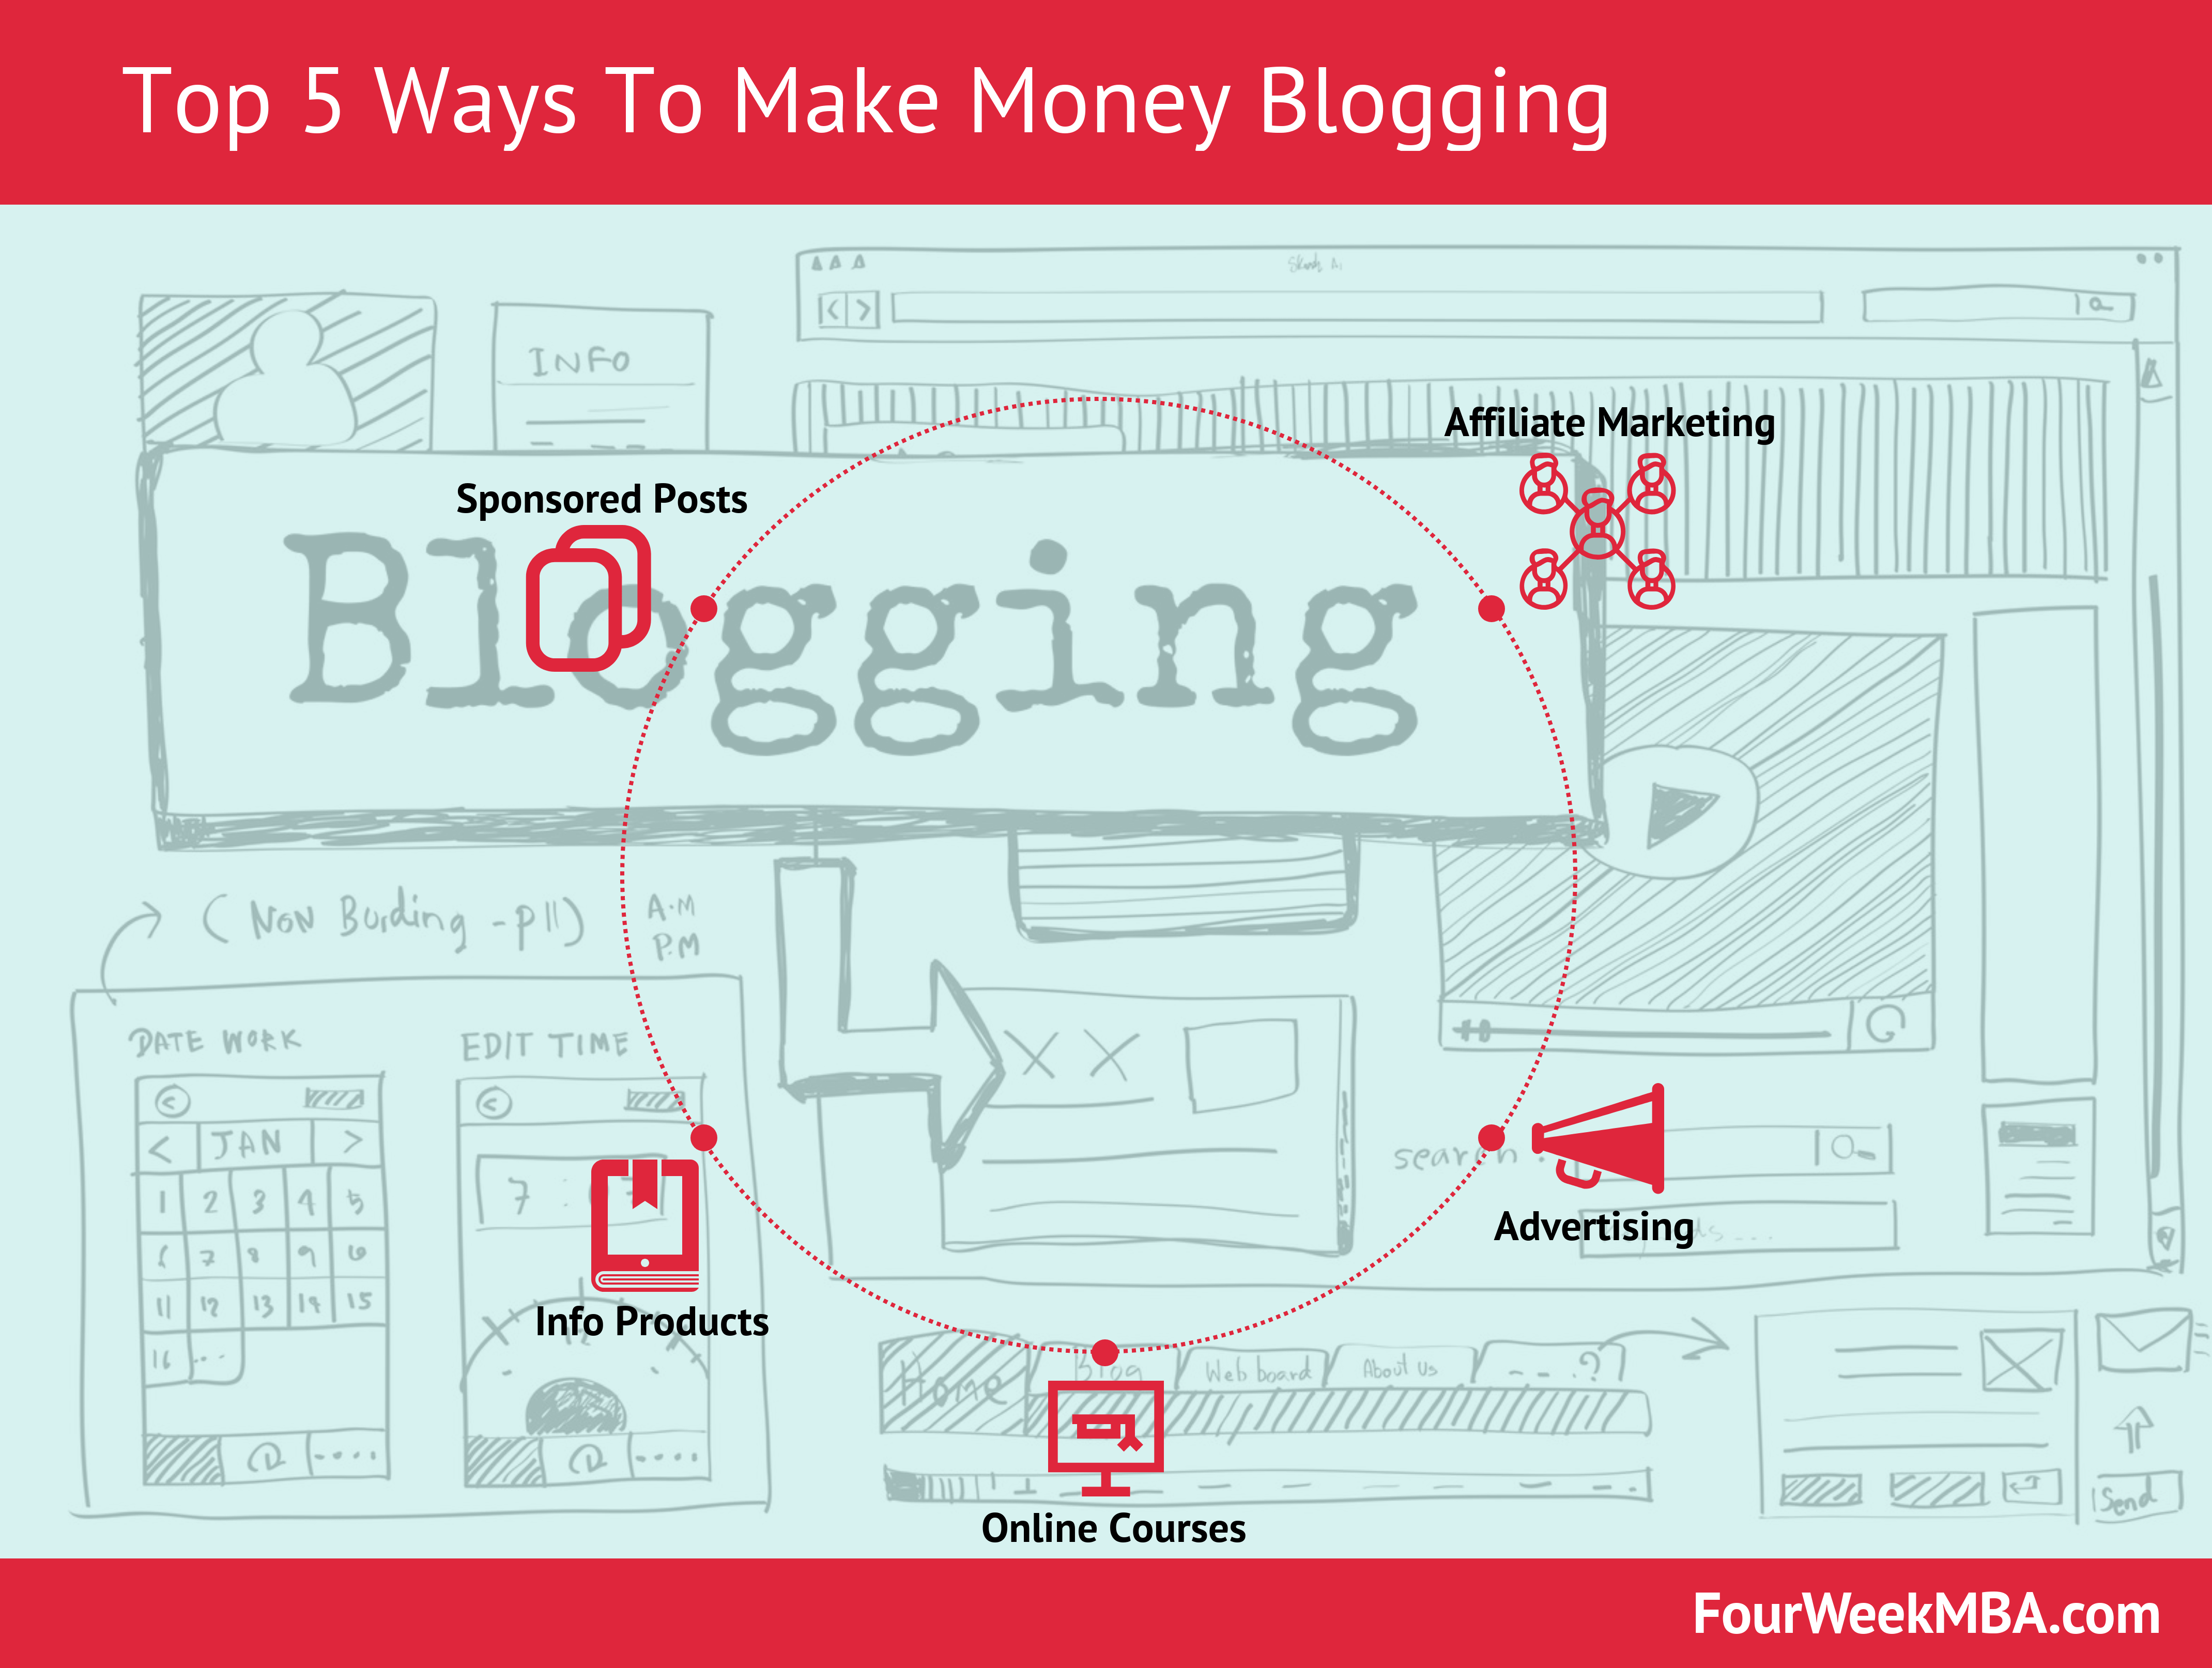 Top 5 Ways To Make Money Blogging